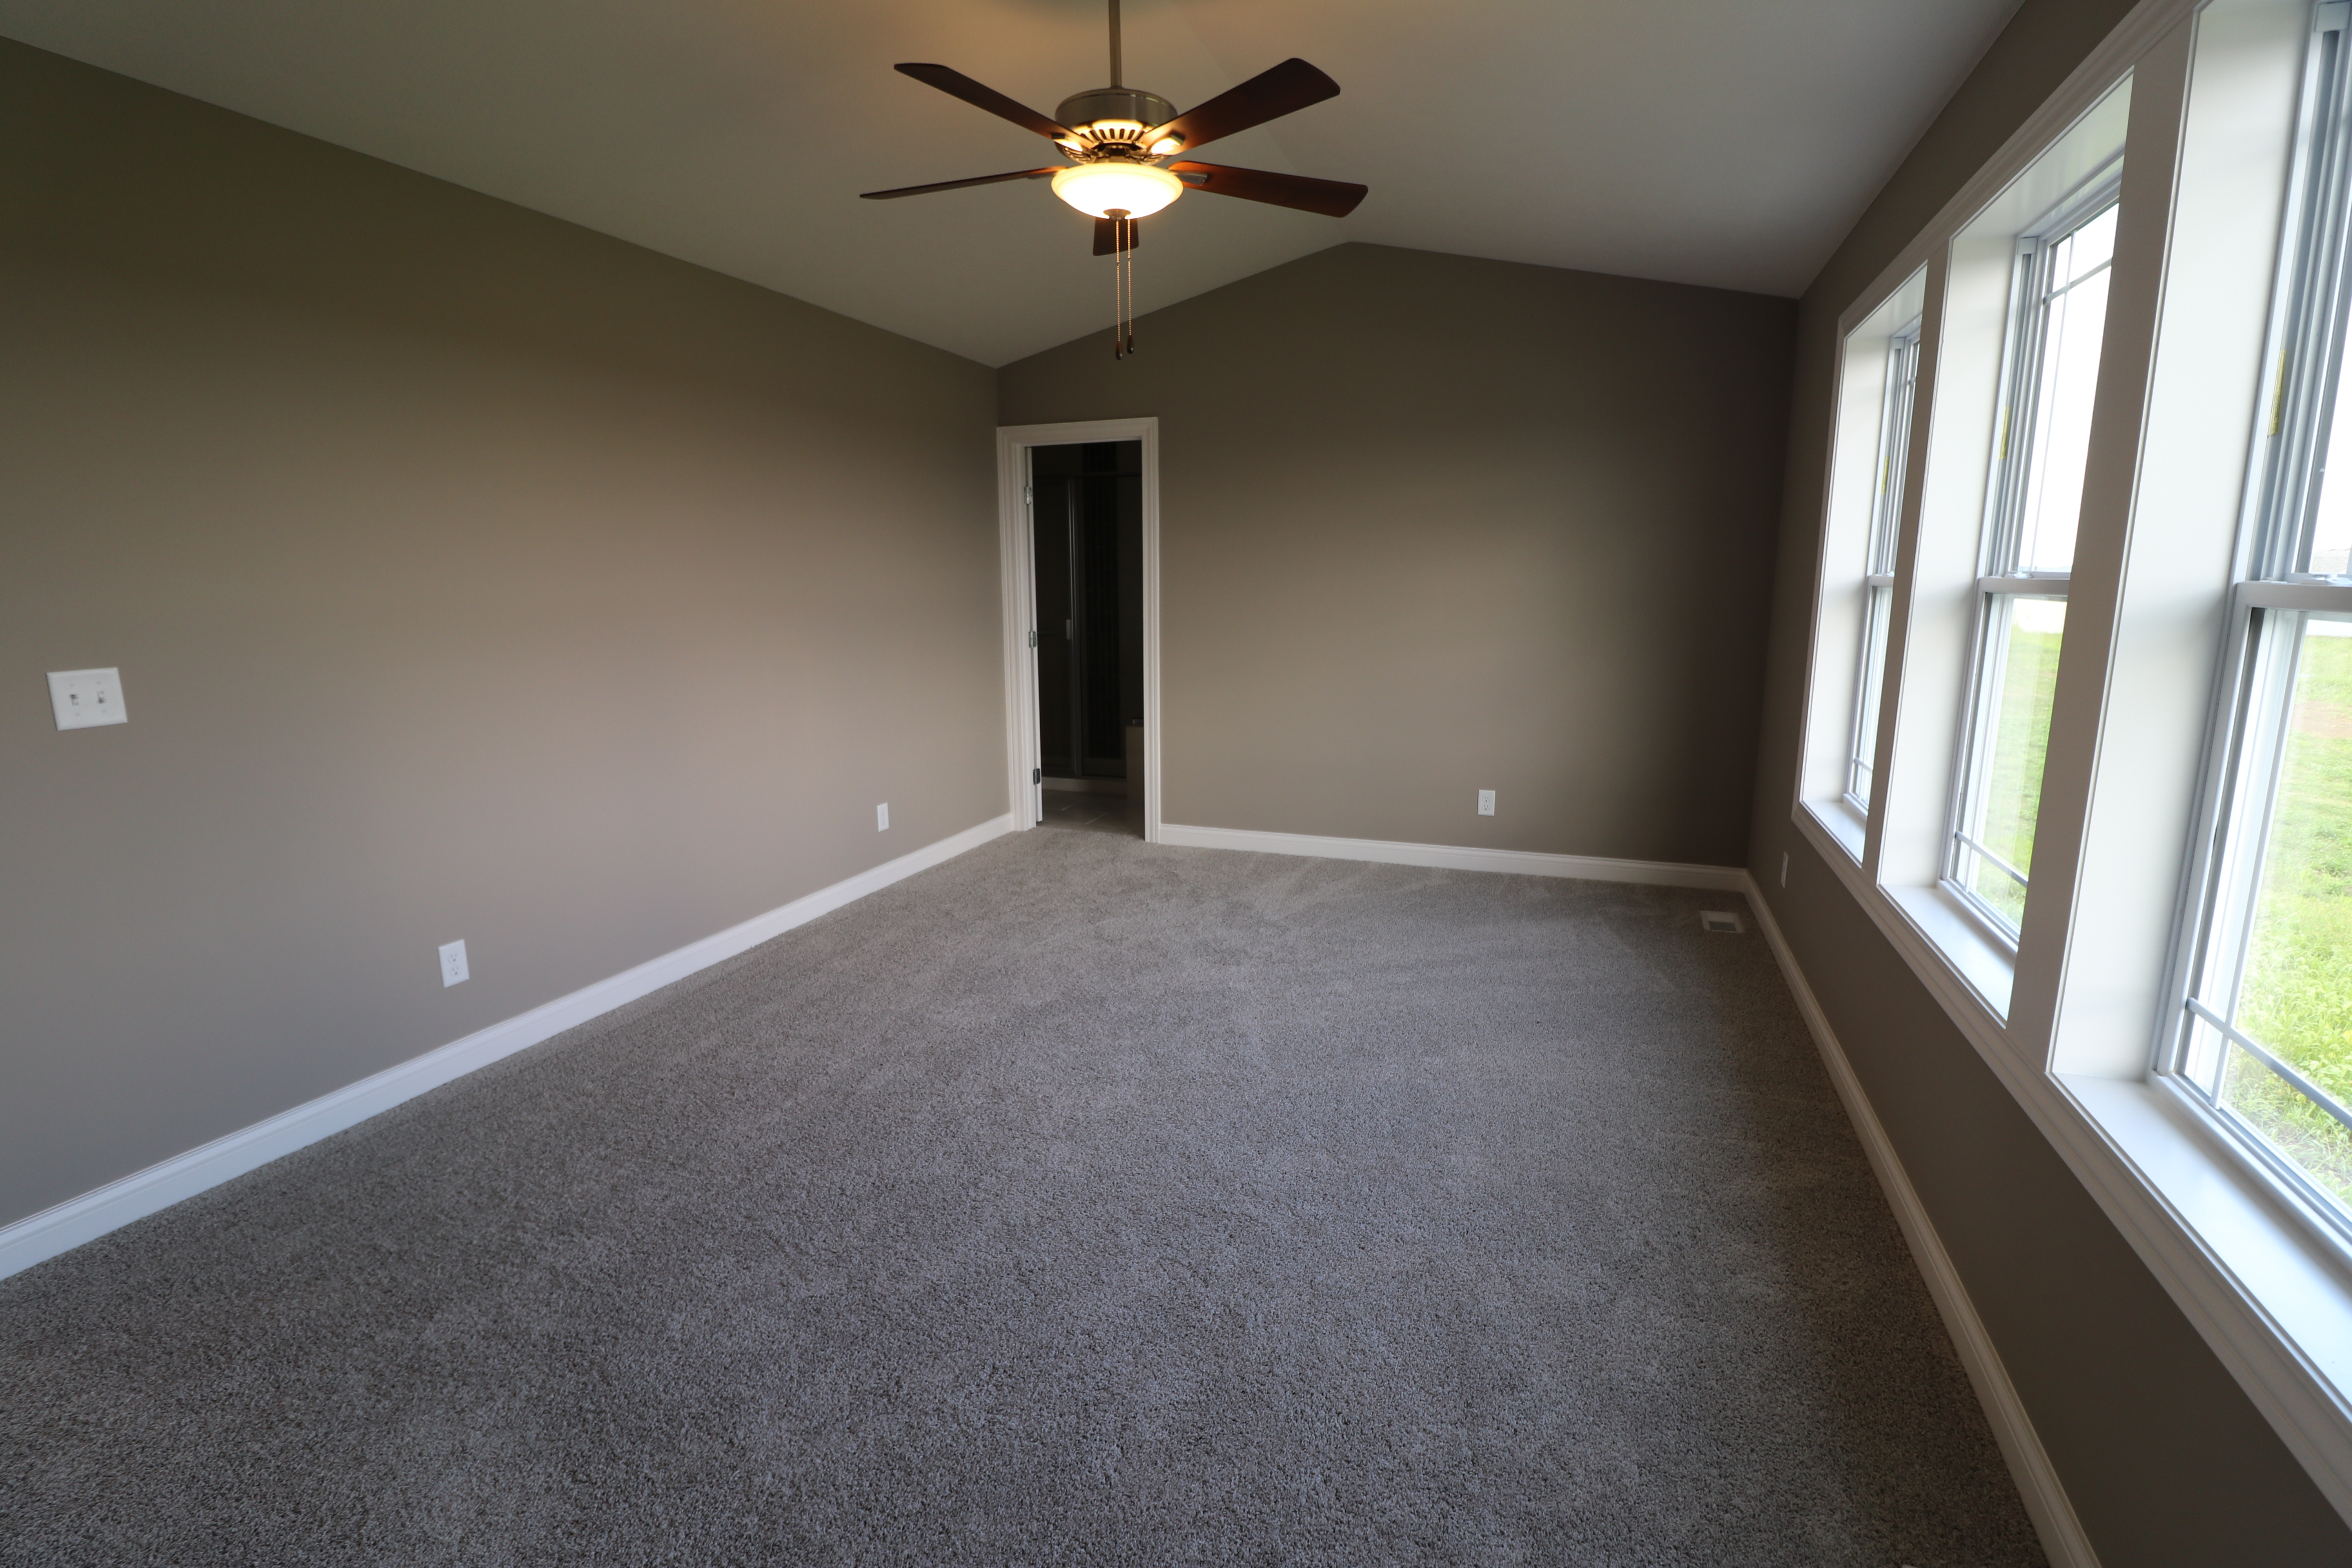 House for sale in the Dunlap peoria area bedroom part 2